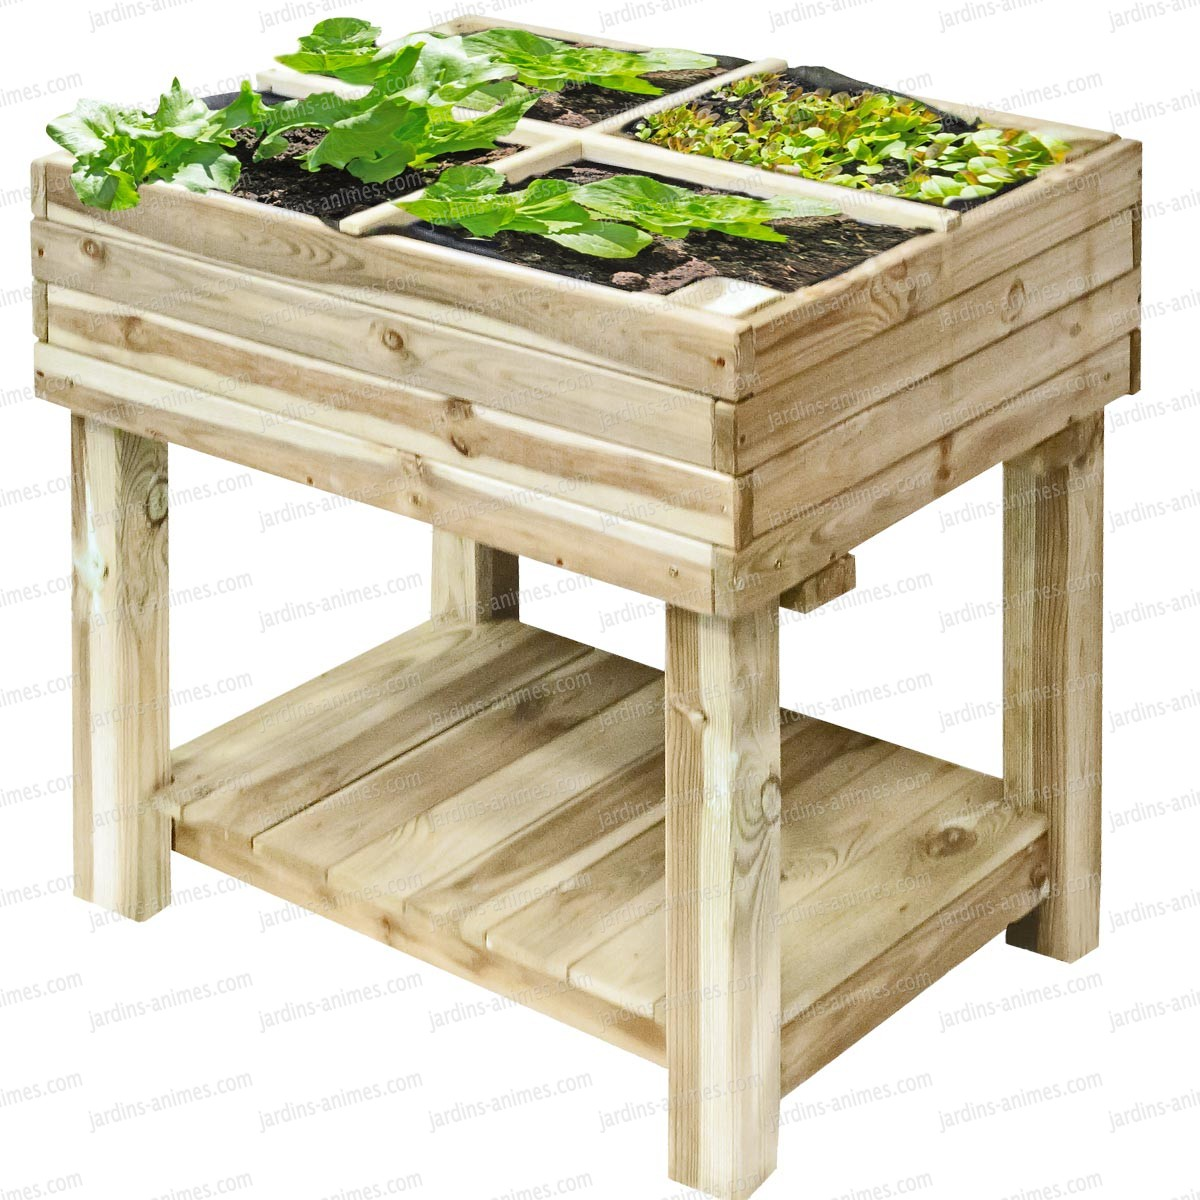 Potager Terrasse Carr Potager Terrasse Elegant Carrac With Carr Potager